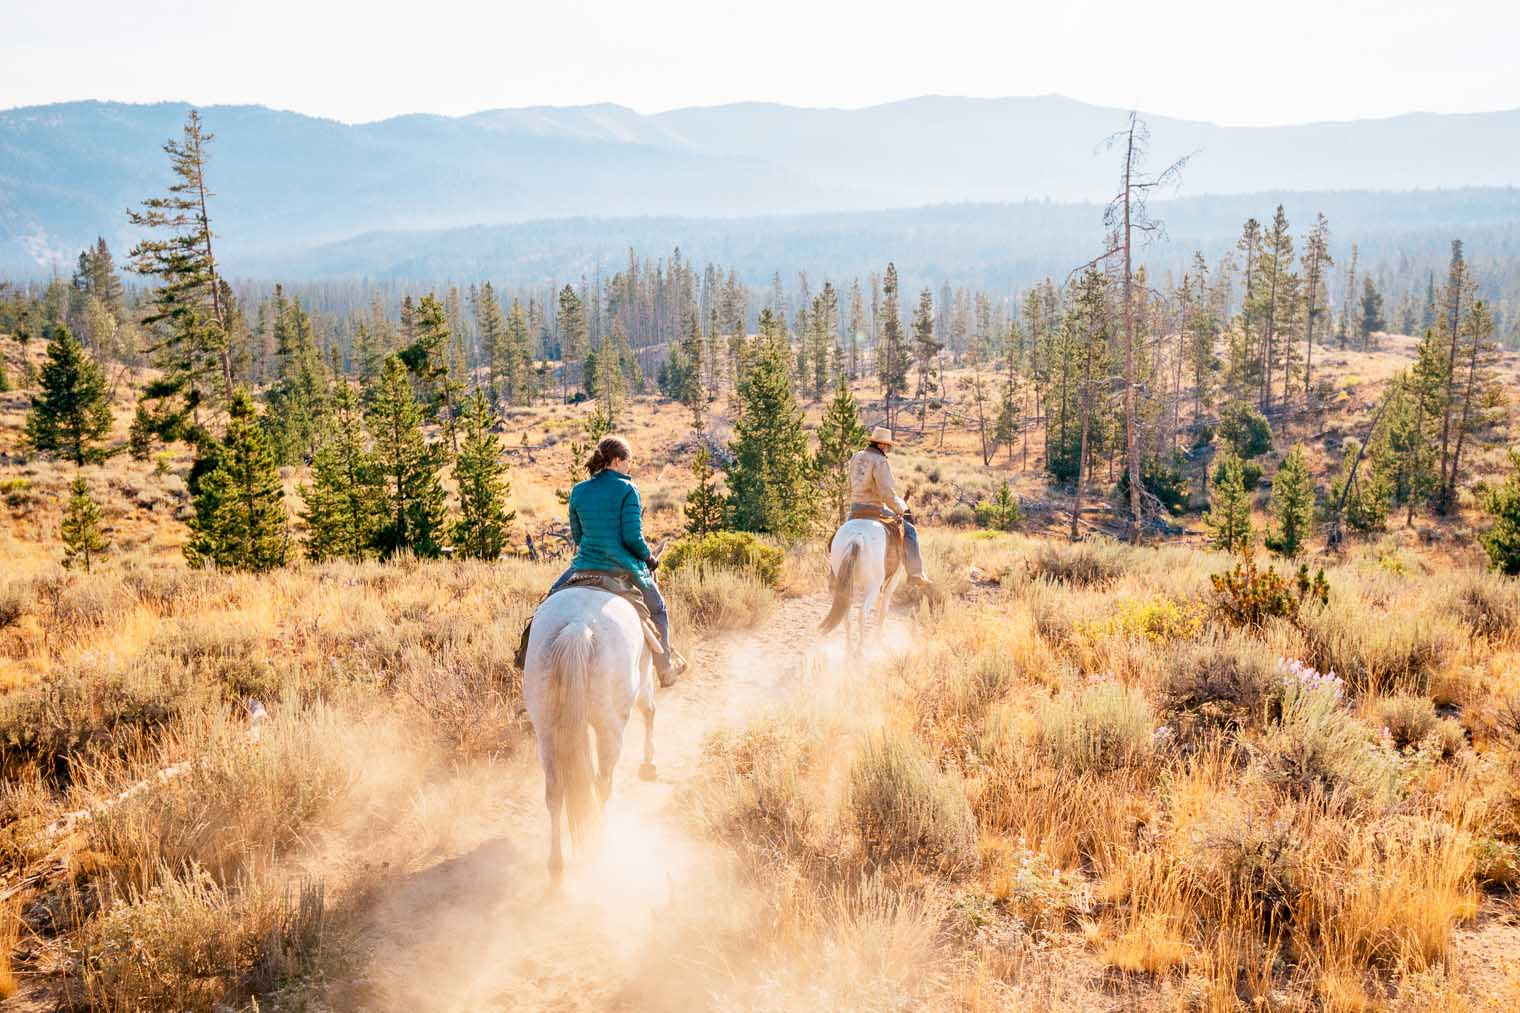 Exploring the Sawtooth Mountains on horseback